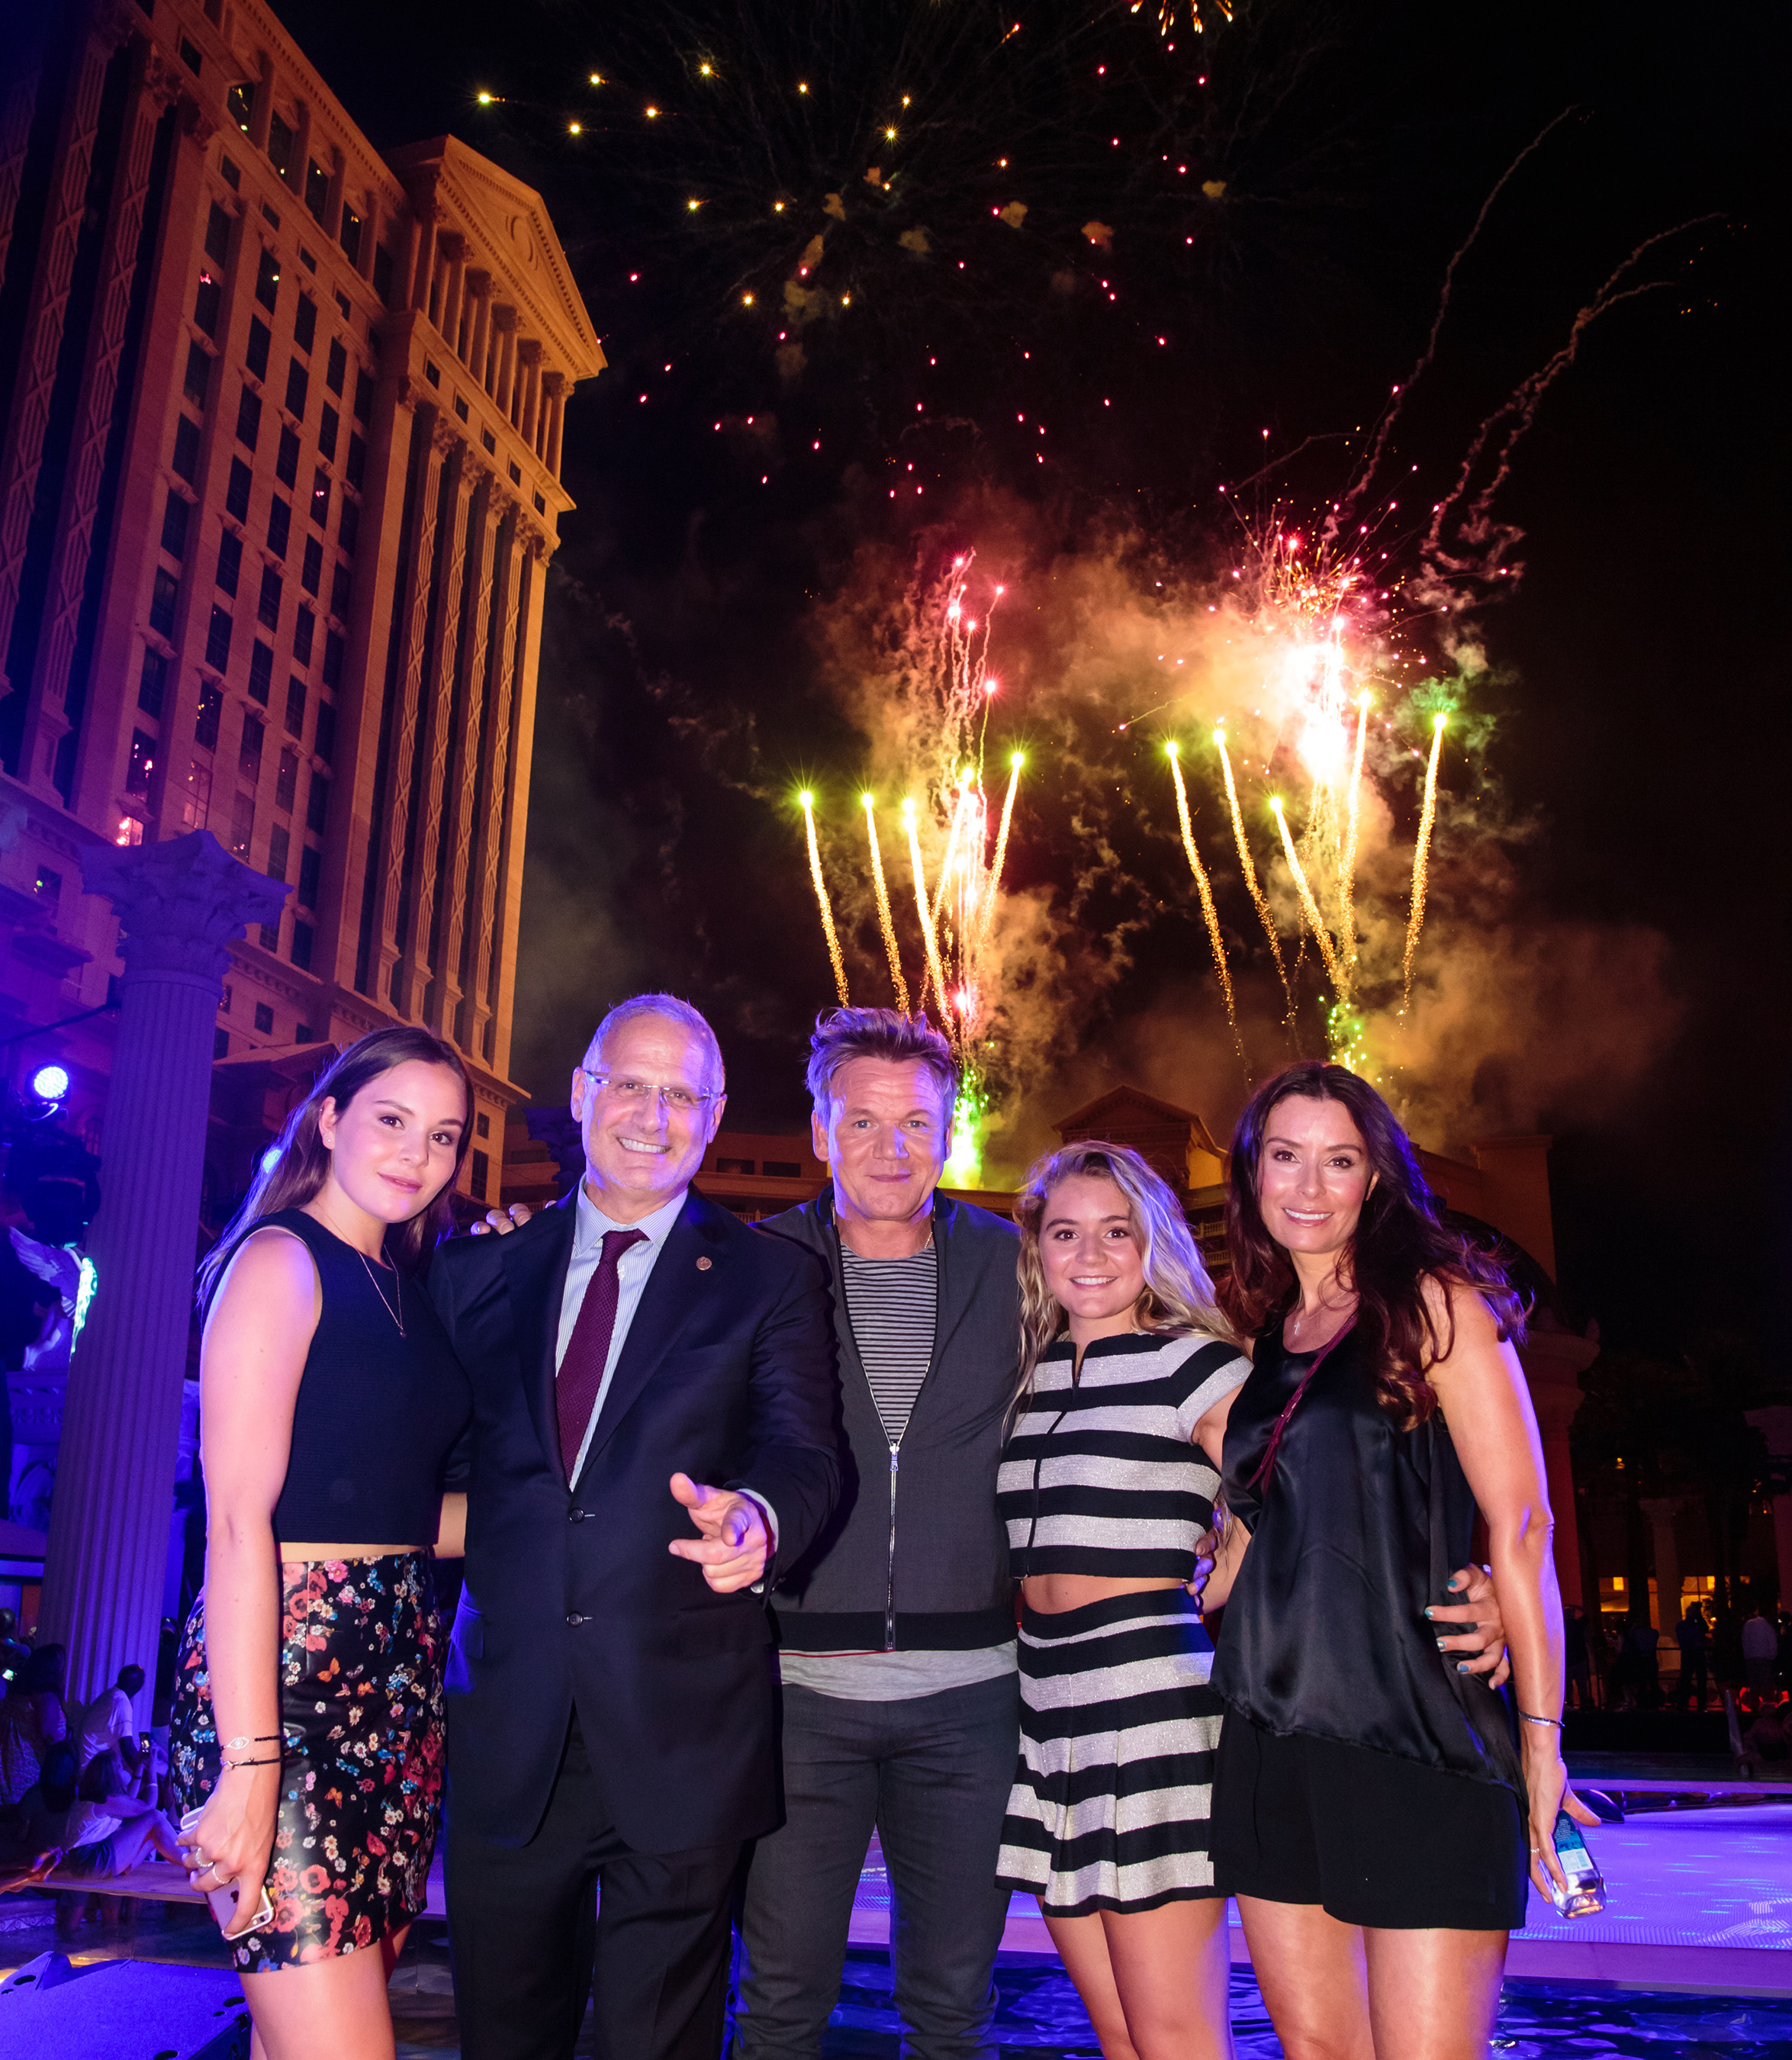 Gordon Ramsay hosts 50th anniversary pool party for Caesars Palace on Friday, Aug. 5 at Garden of the Gods Pool Oasis. (L-R): Holly Ramsay, Gary Selesner, Gordon , Matilda Ramsay and Tana Ramsay. Photo Credit: Erik Kabik